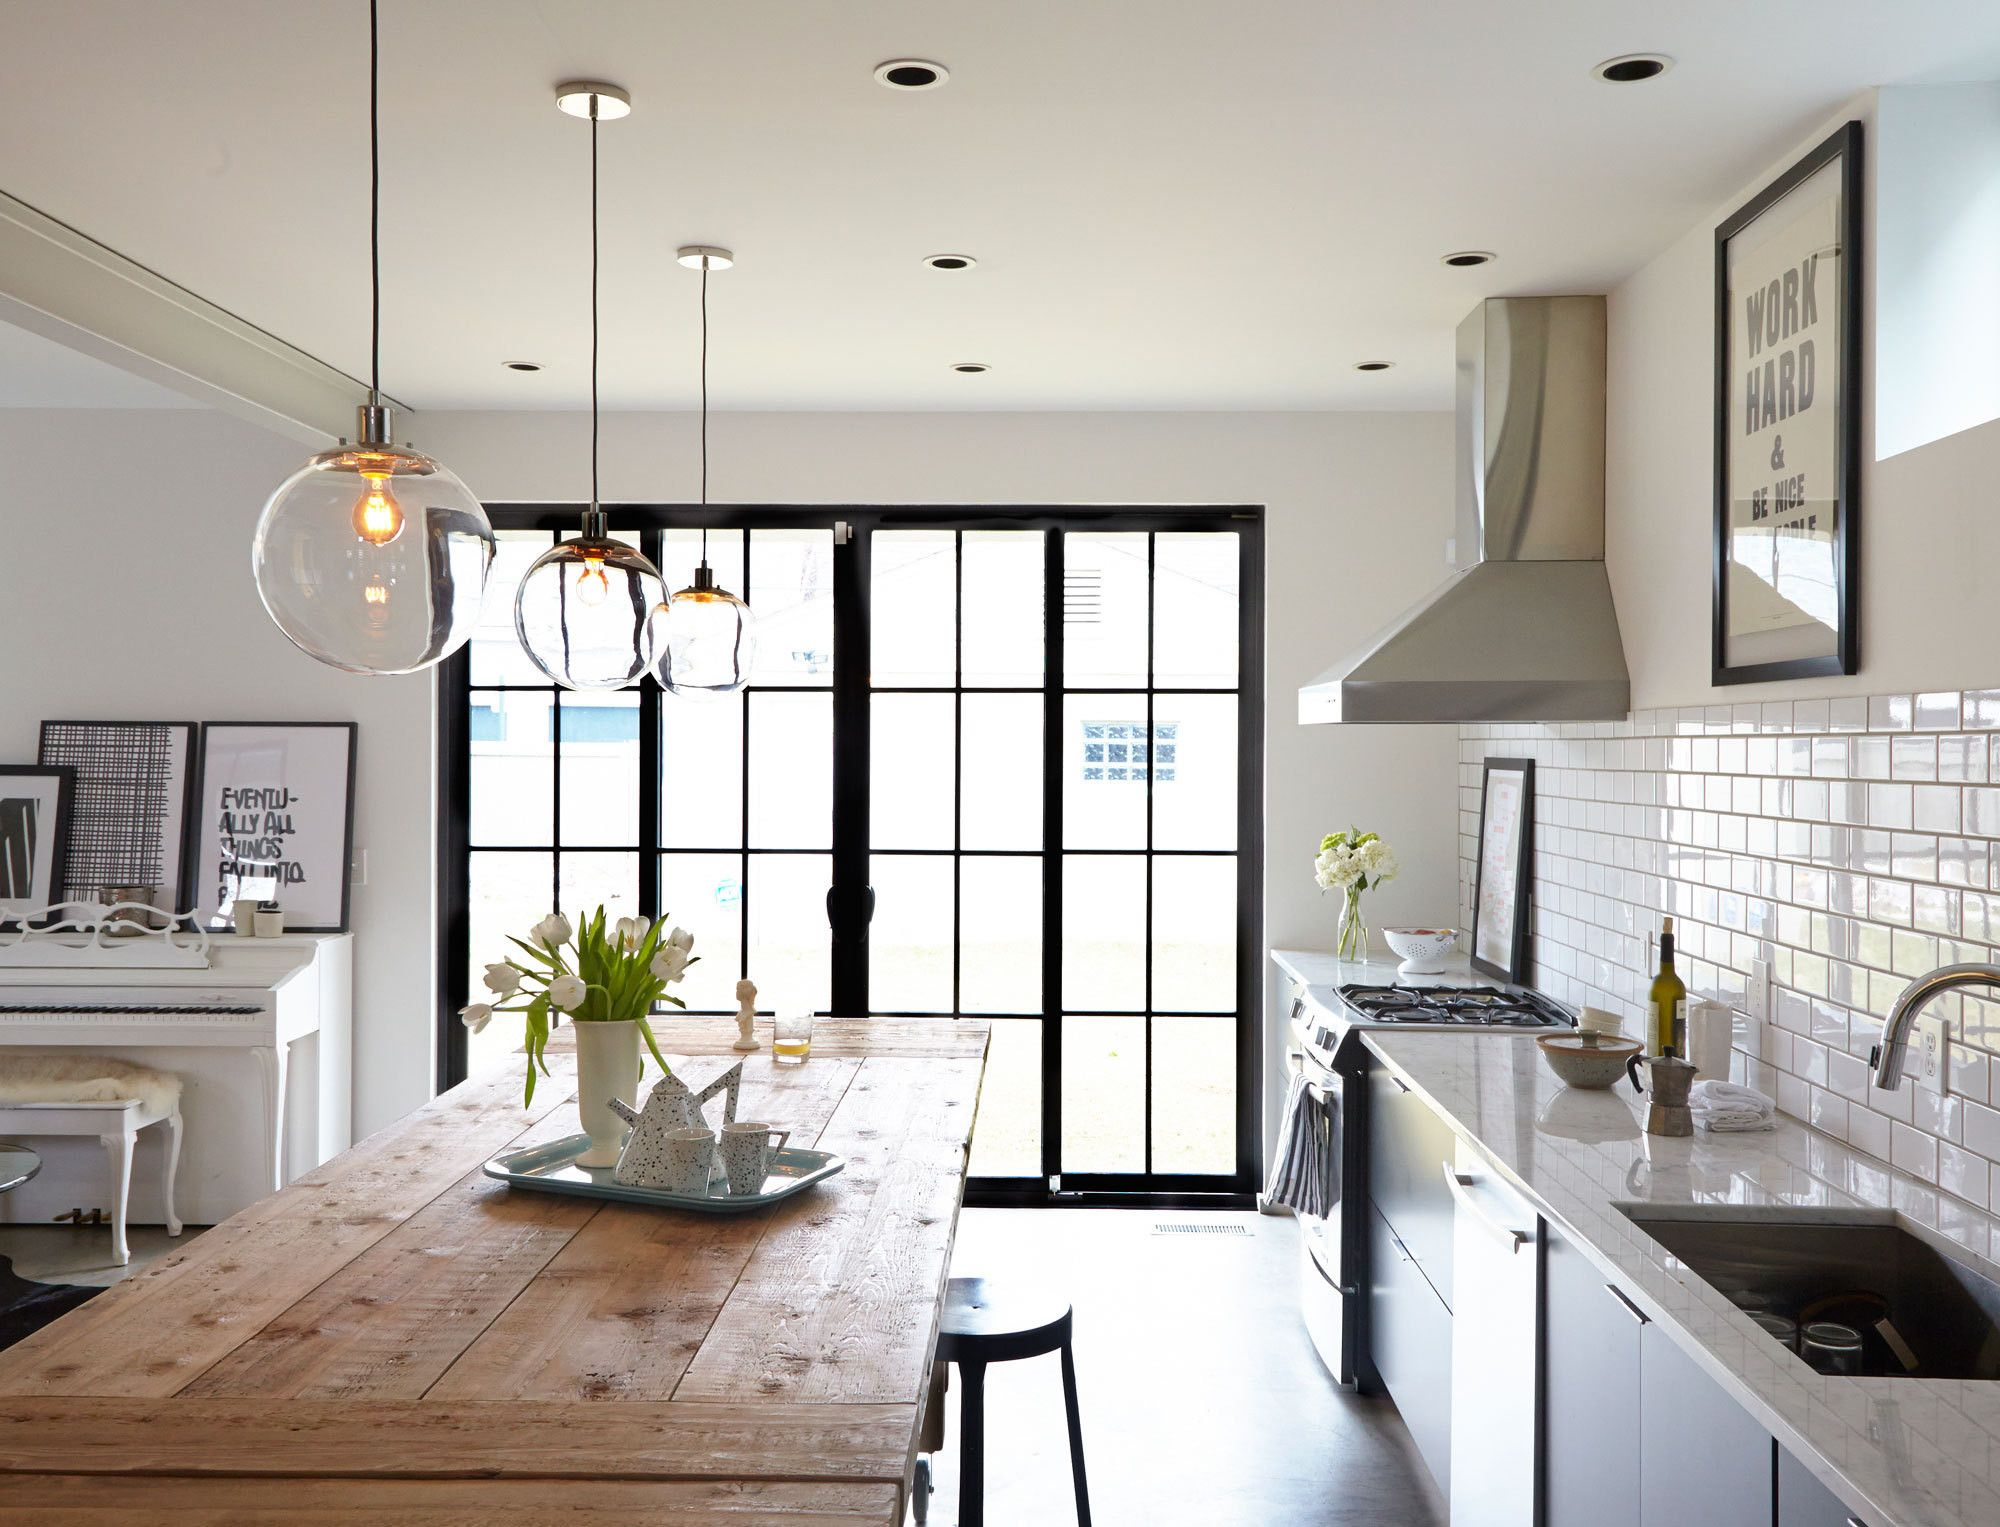 Lighting Kitchen In the clear pendant lighting farming and third three pendant lights from west elm are suspended over a knotty surfaced farm table in the kitchen one of the few holdovers from the homeowners previous workwithnaturefo